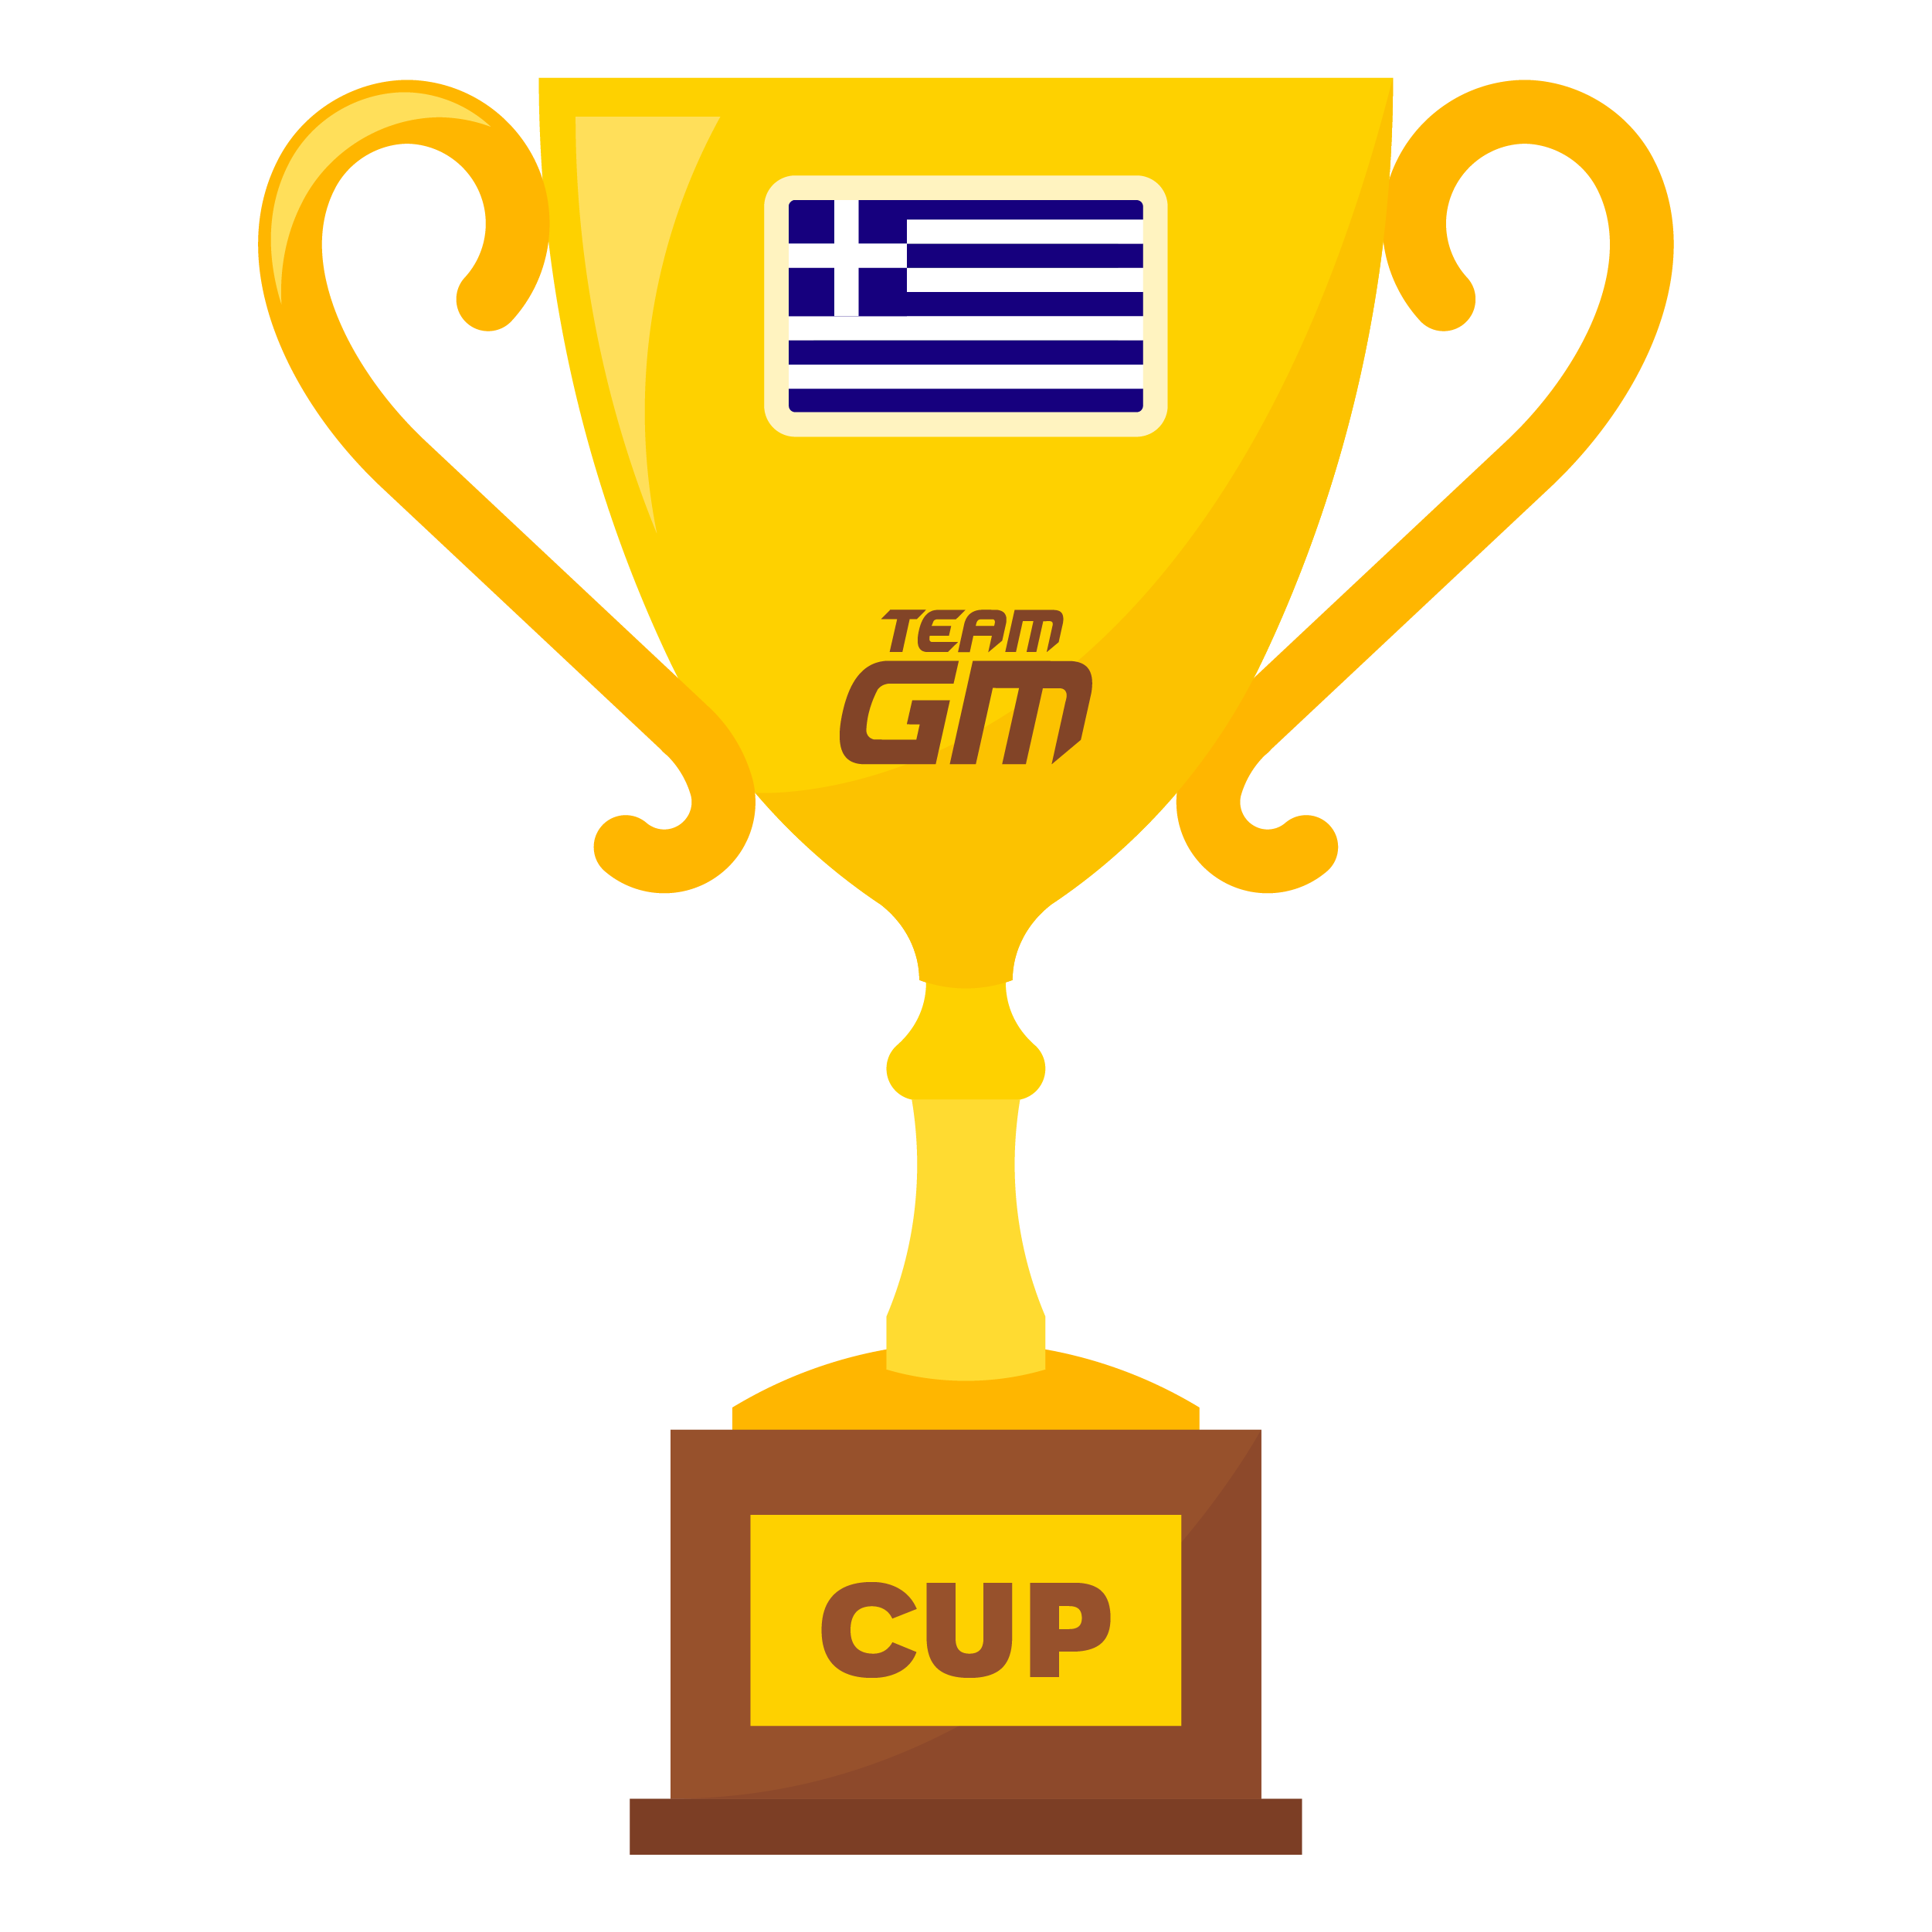 3RD - GREECE CUP